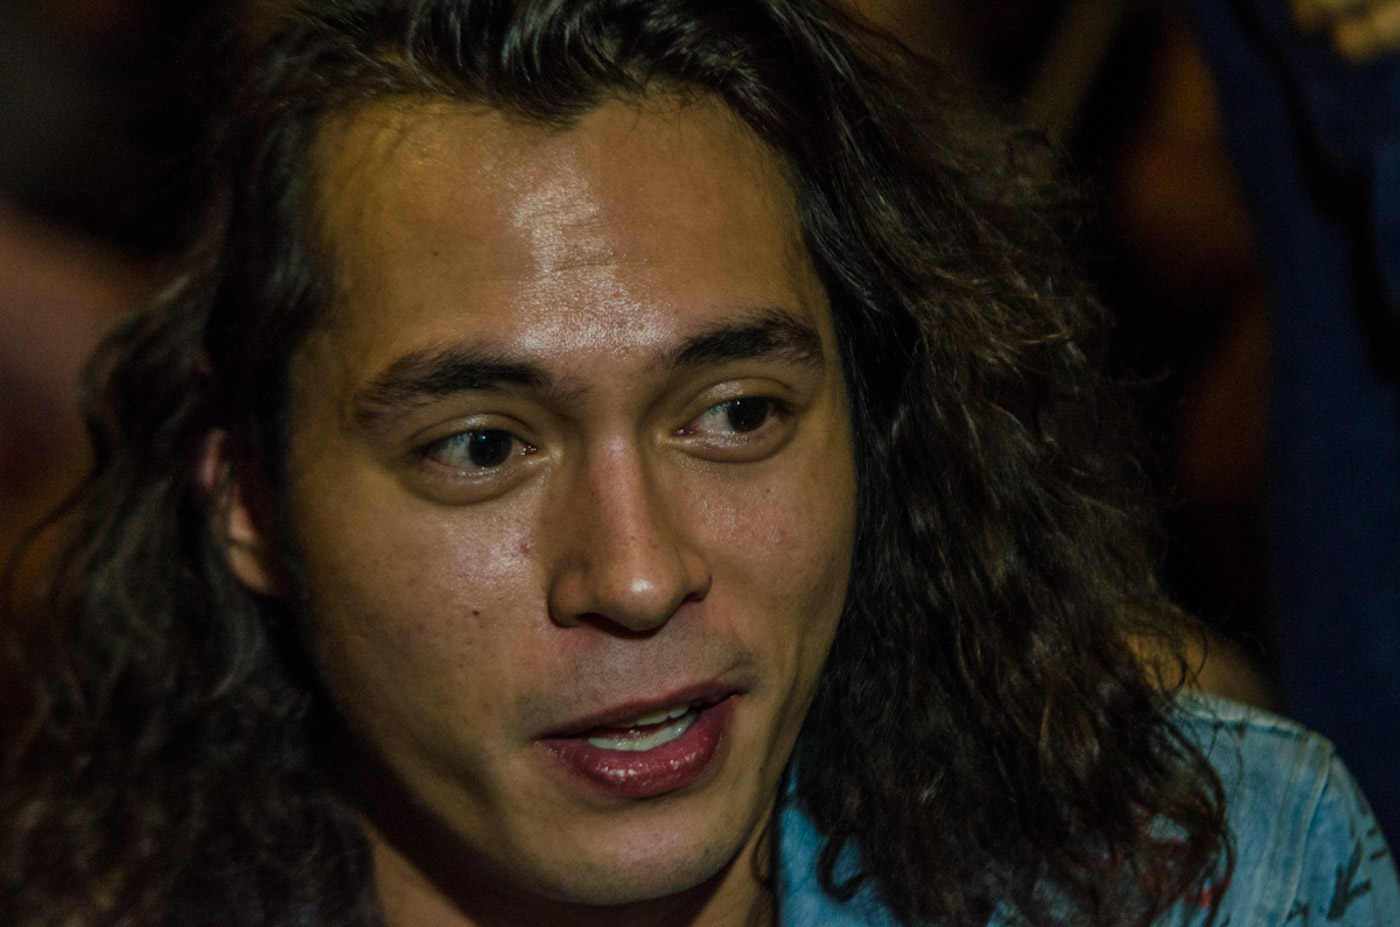 ICONIC VILLAIN. Jake Cuenca tests his acting skills as Lizardo in the movie